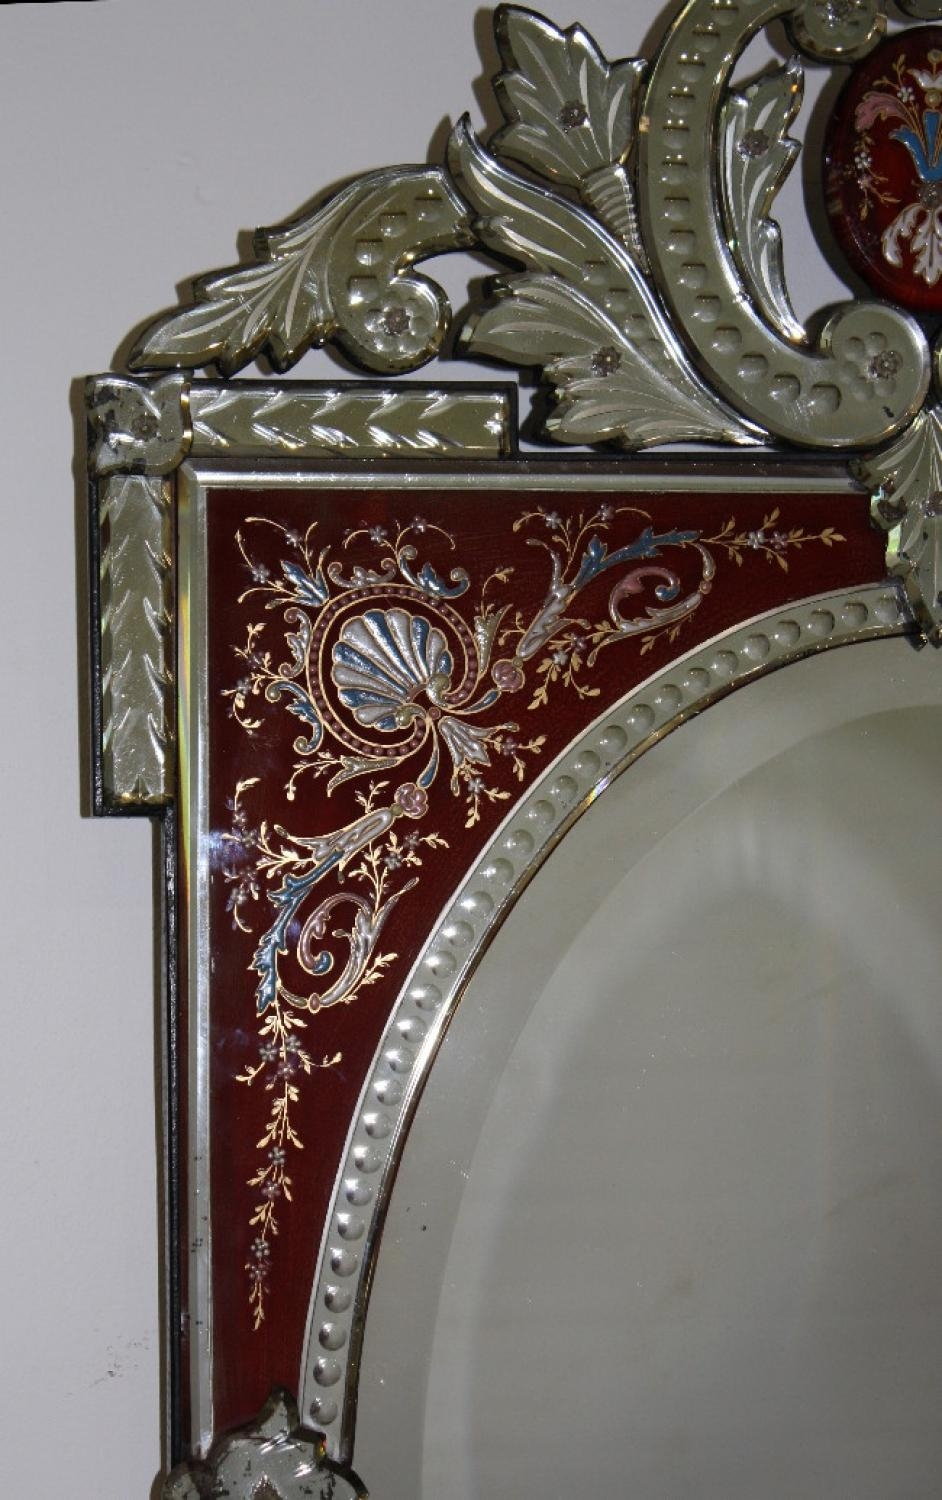 Rare Red Framed Antique Venetian Mirror Intended For Venetian Mirrors Antique (Image 16 of 20)